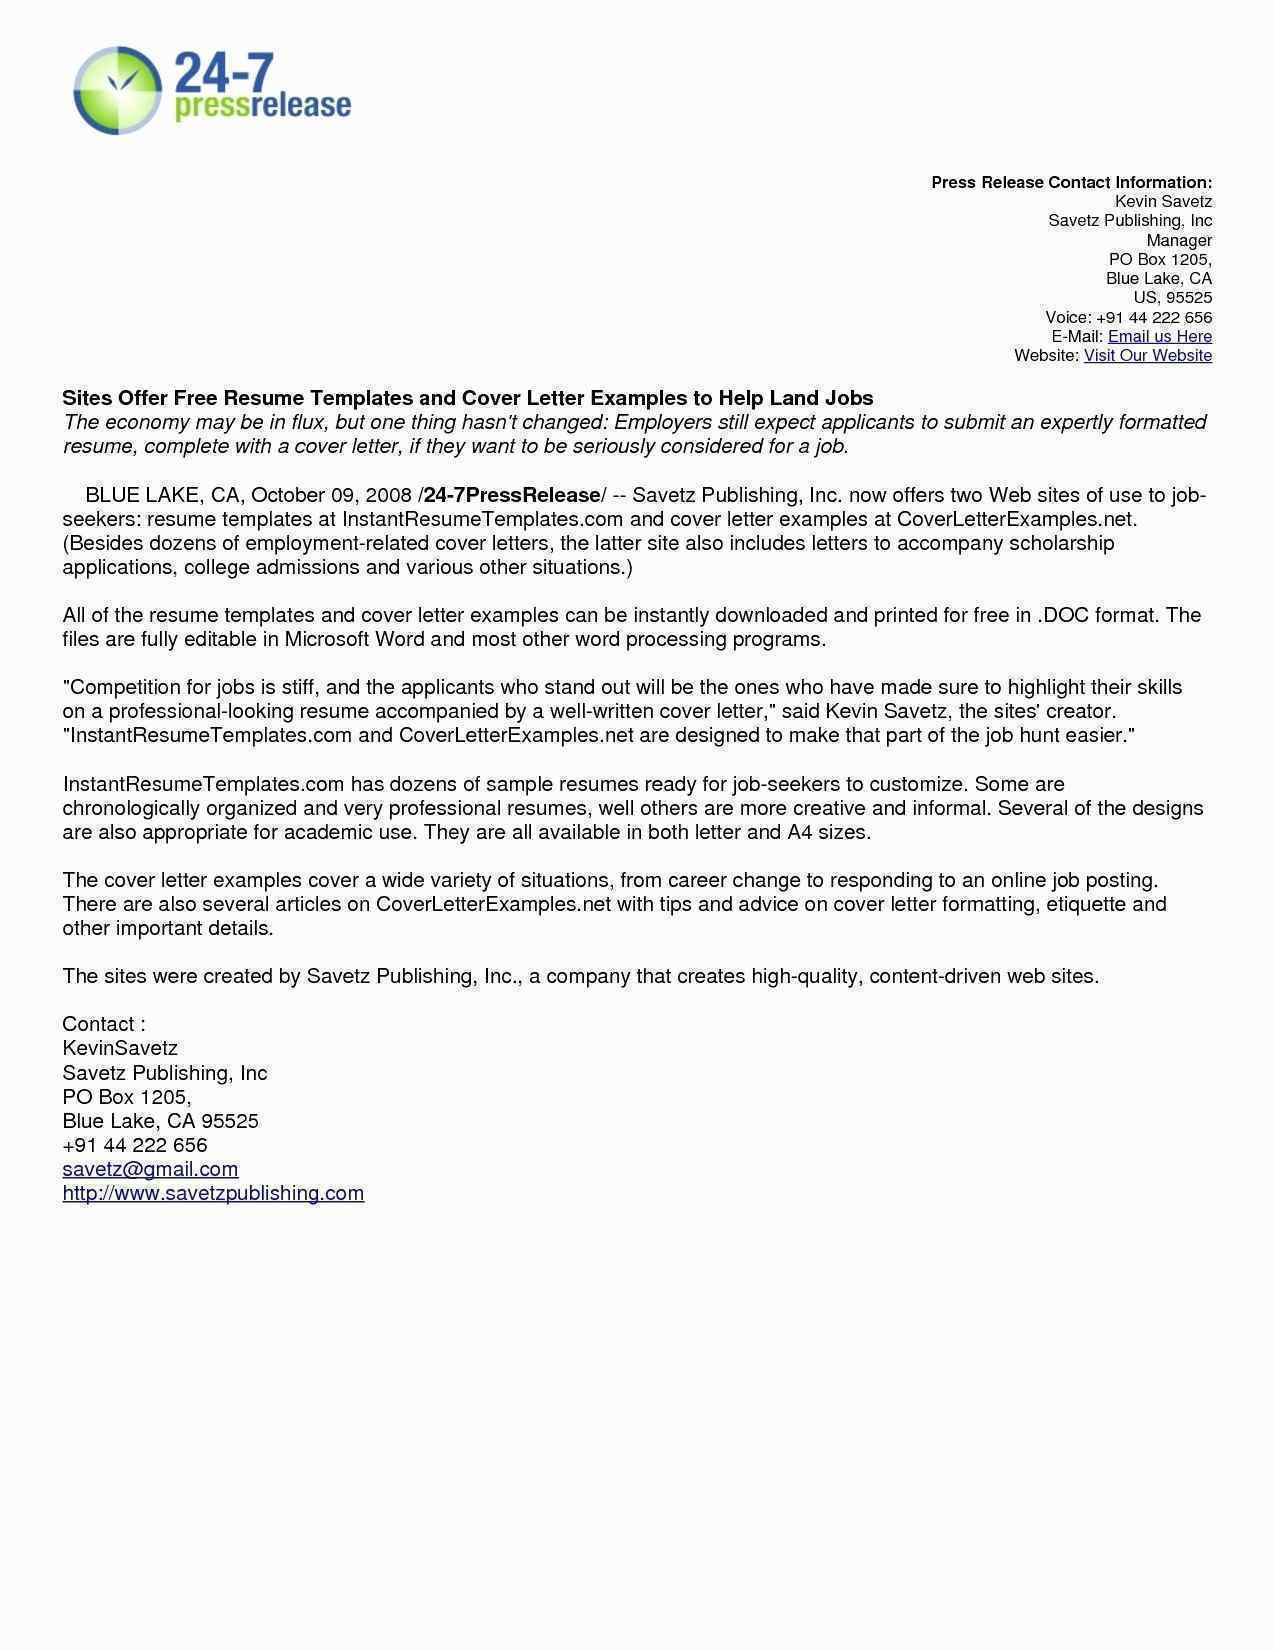 free word cover letter template example-Cover Letter Template Best Dr Note Examples New Hippa forms 0d – Medicreditfo 4-f